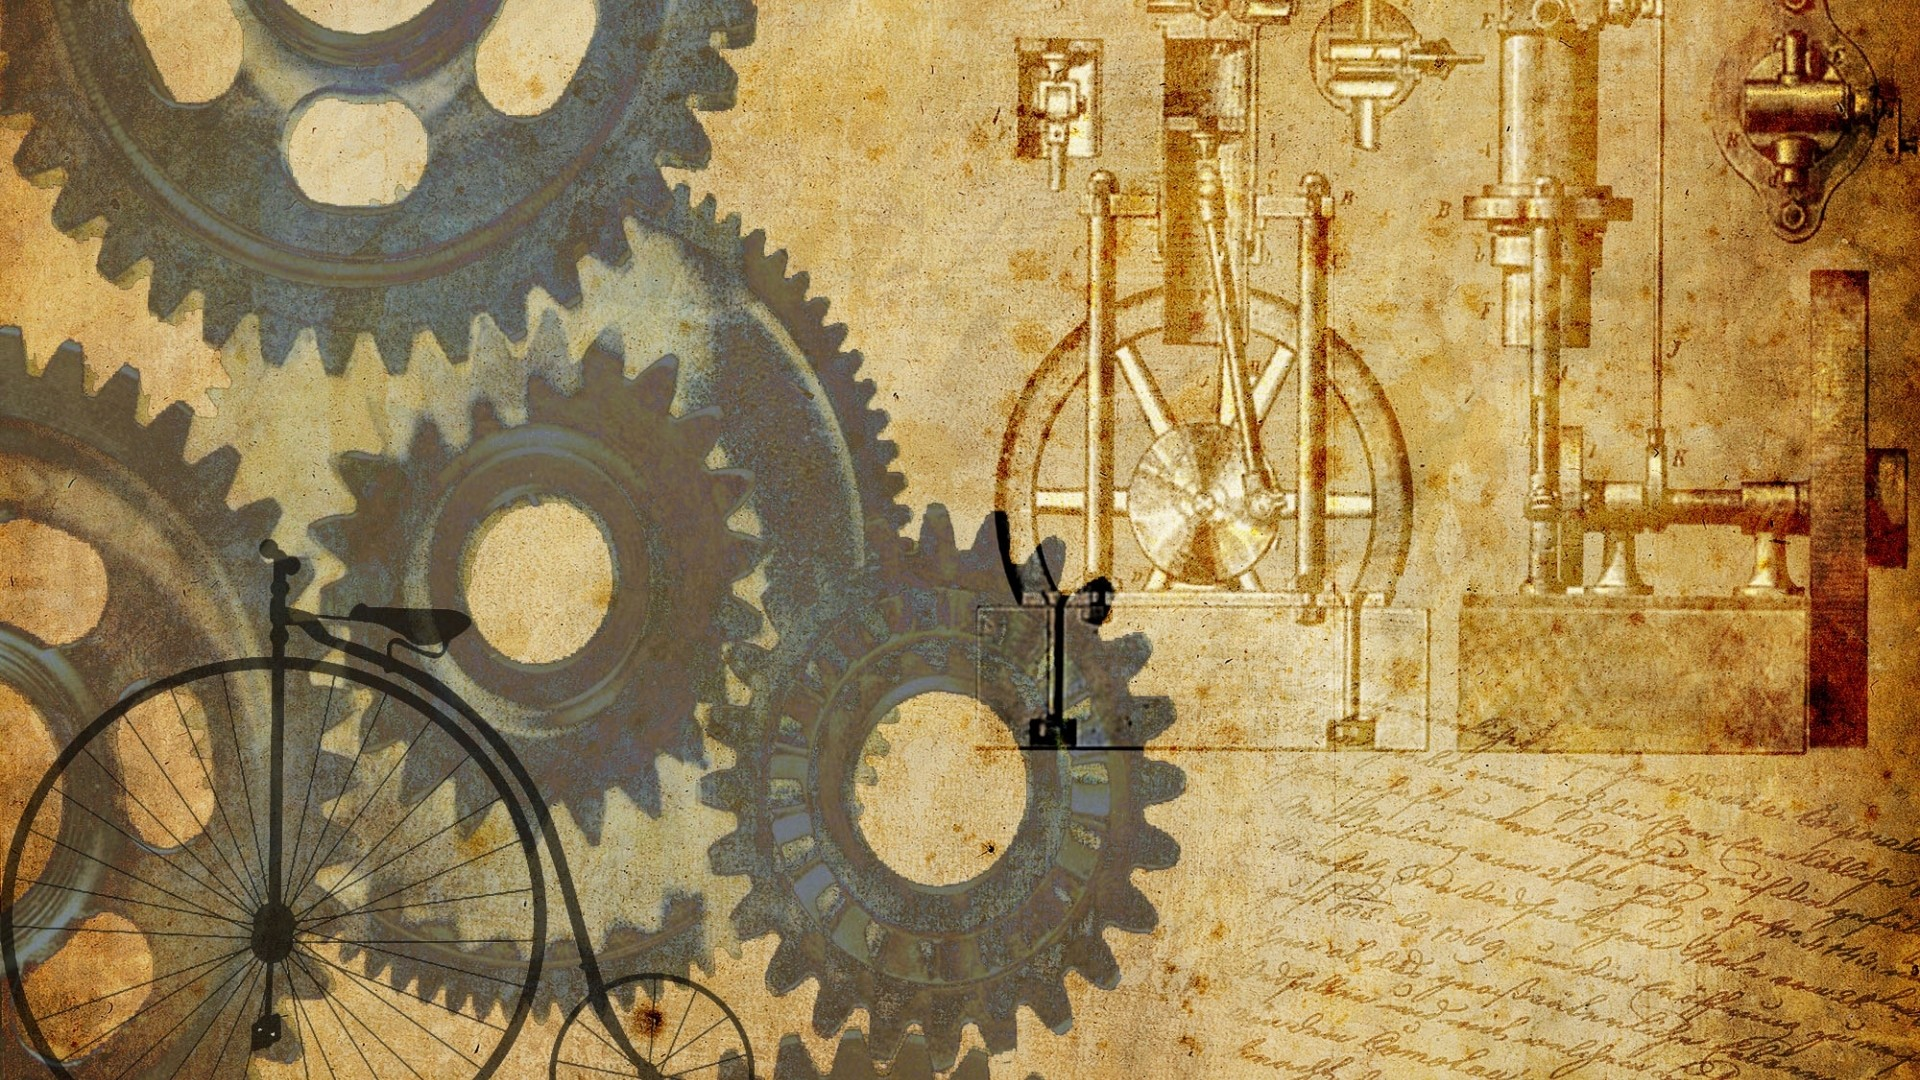 Steampunk Free Wallpaper and Background